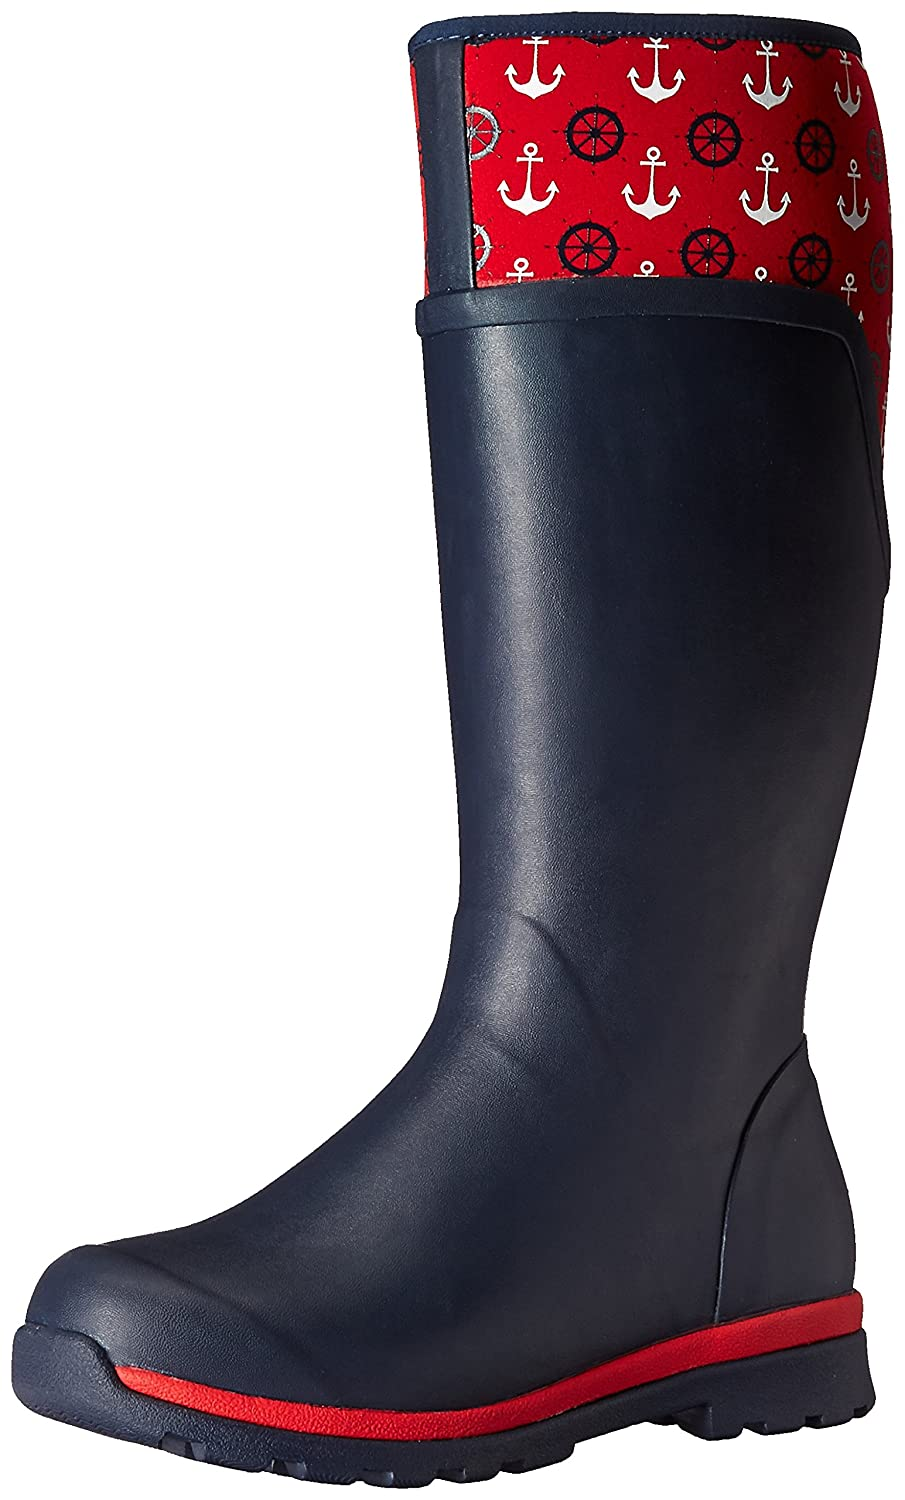 Muck Boot Women's Cambridge Tall Snow B01MR68T5A 5 B(M) US|Navy With Red Anchors